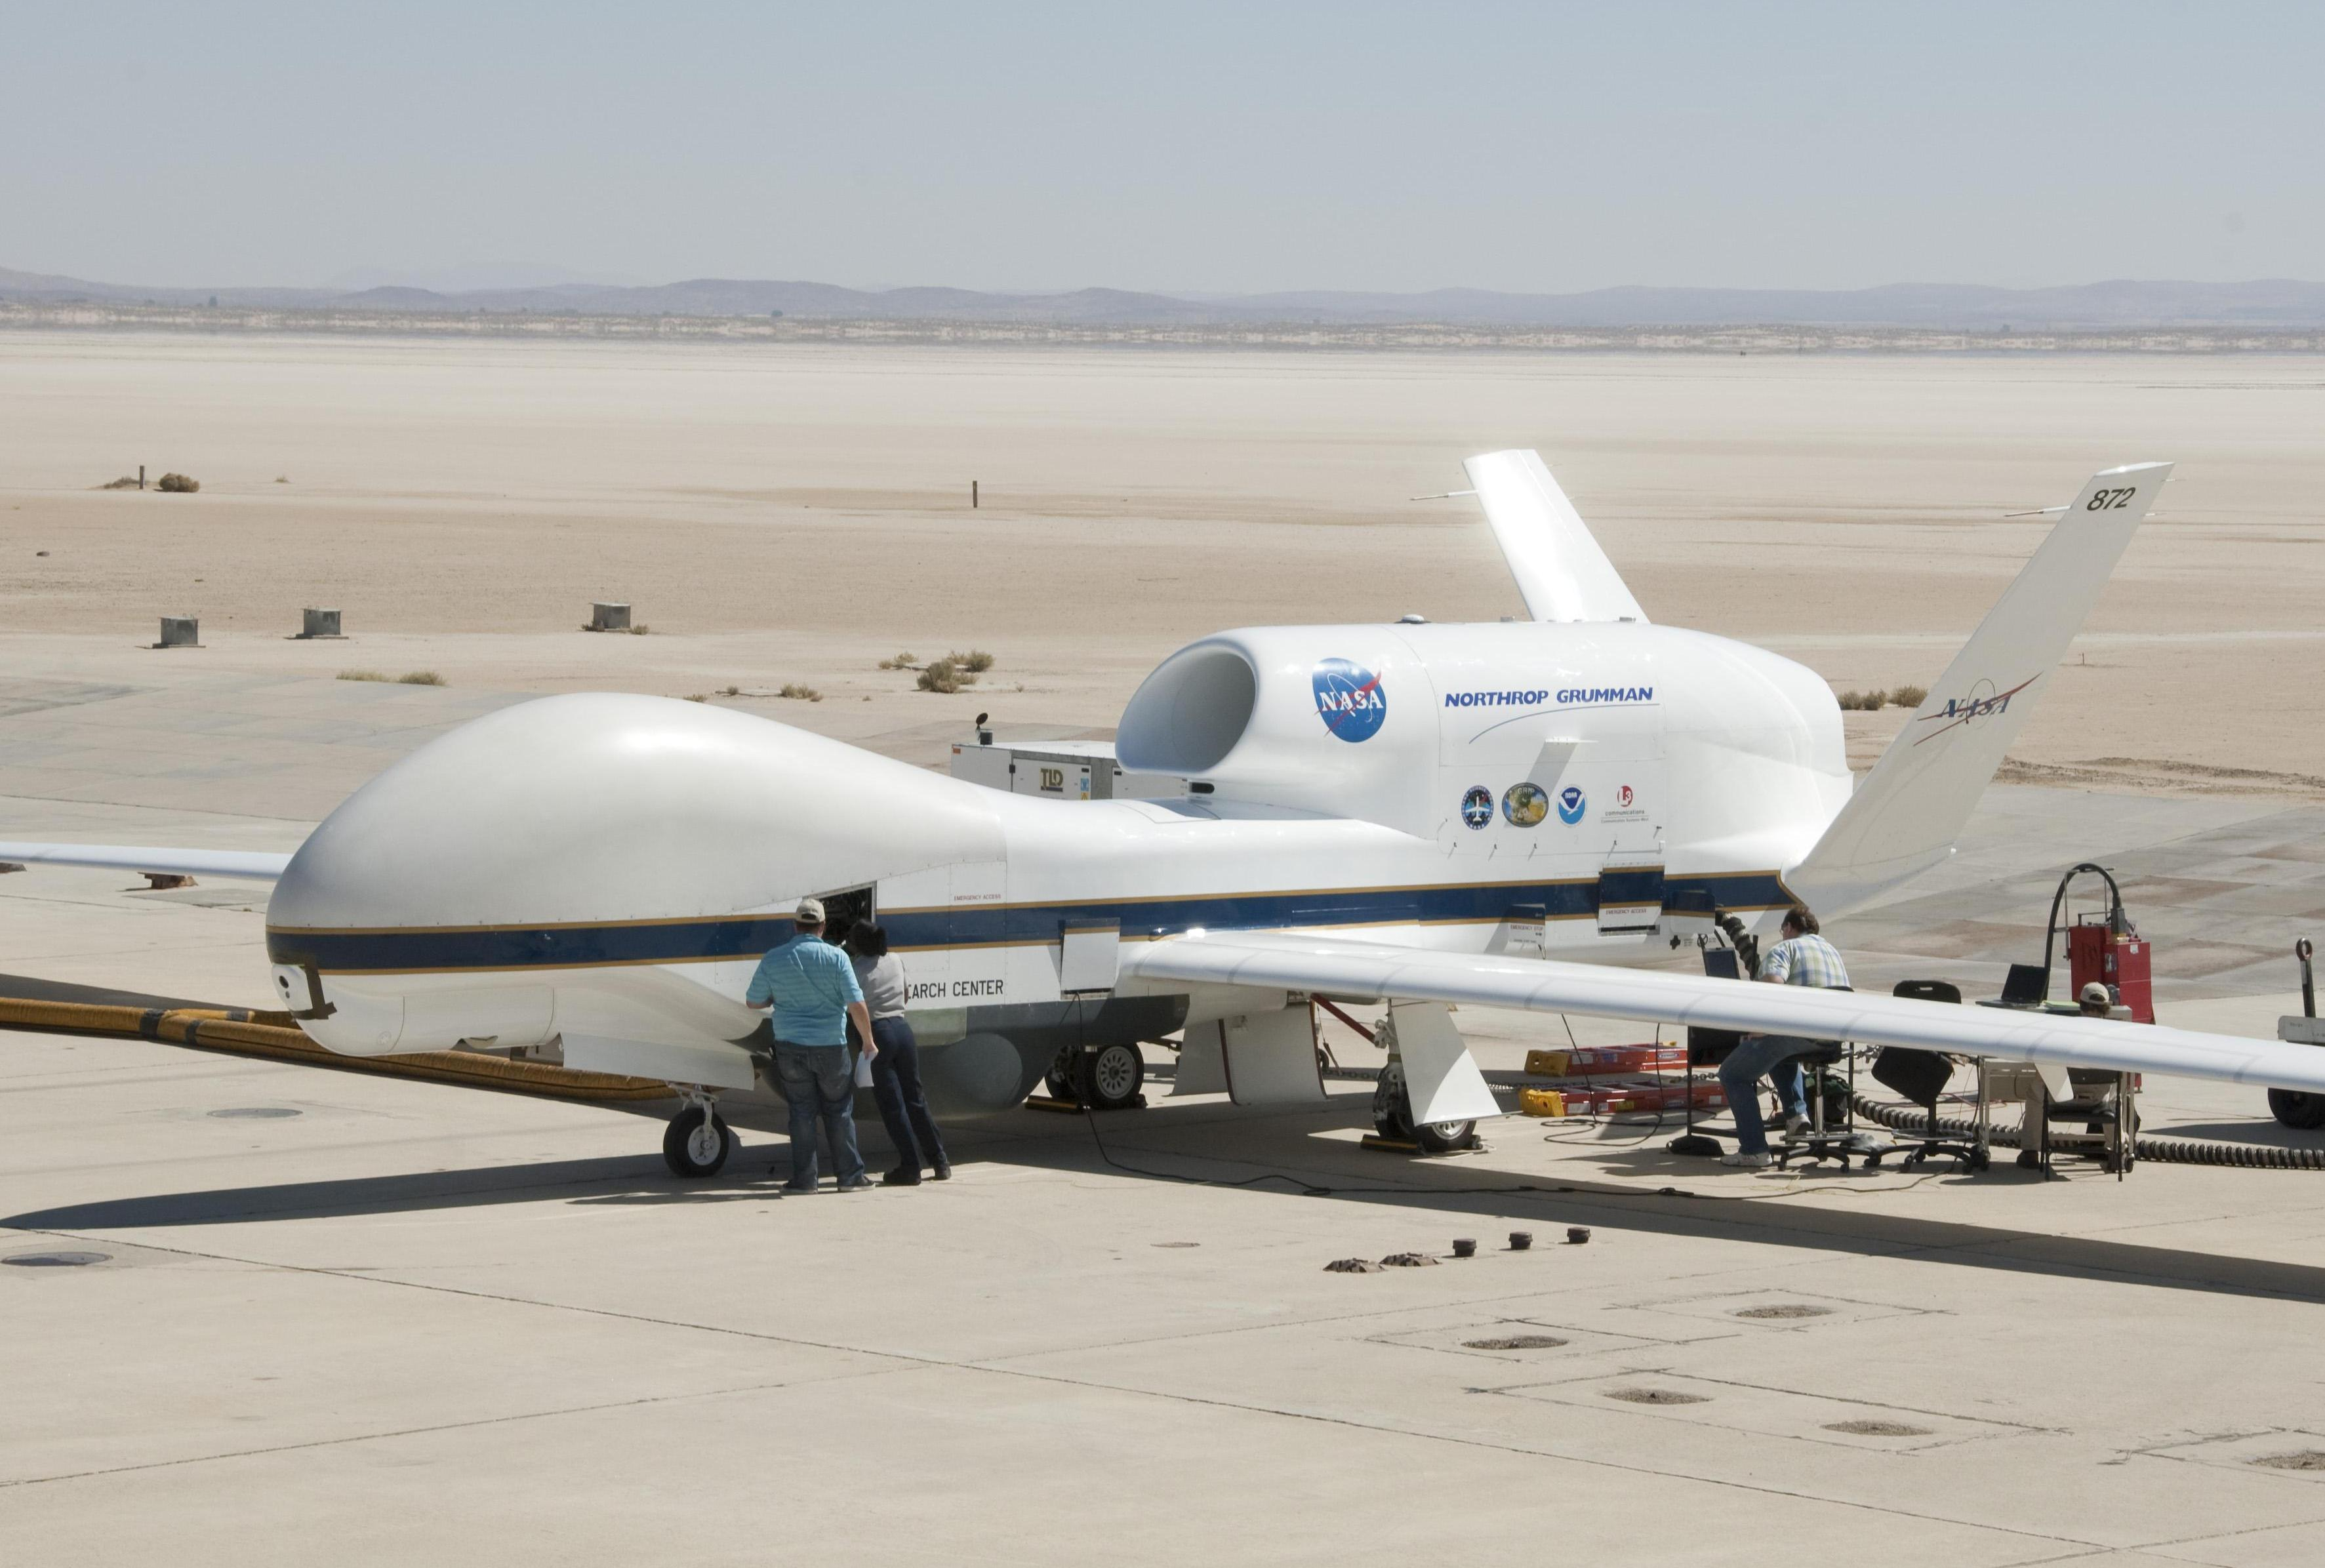 NASA Global Hawk Aircraft (page 2) - Pics about space